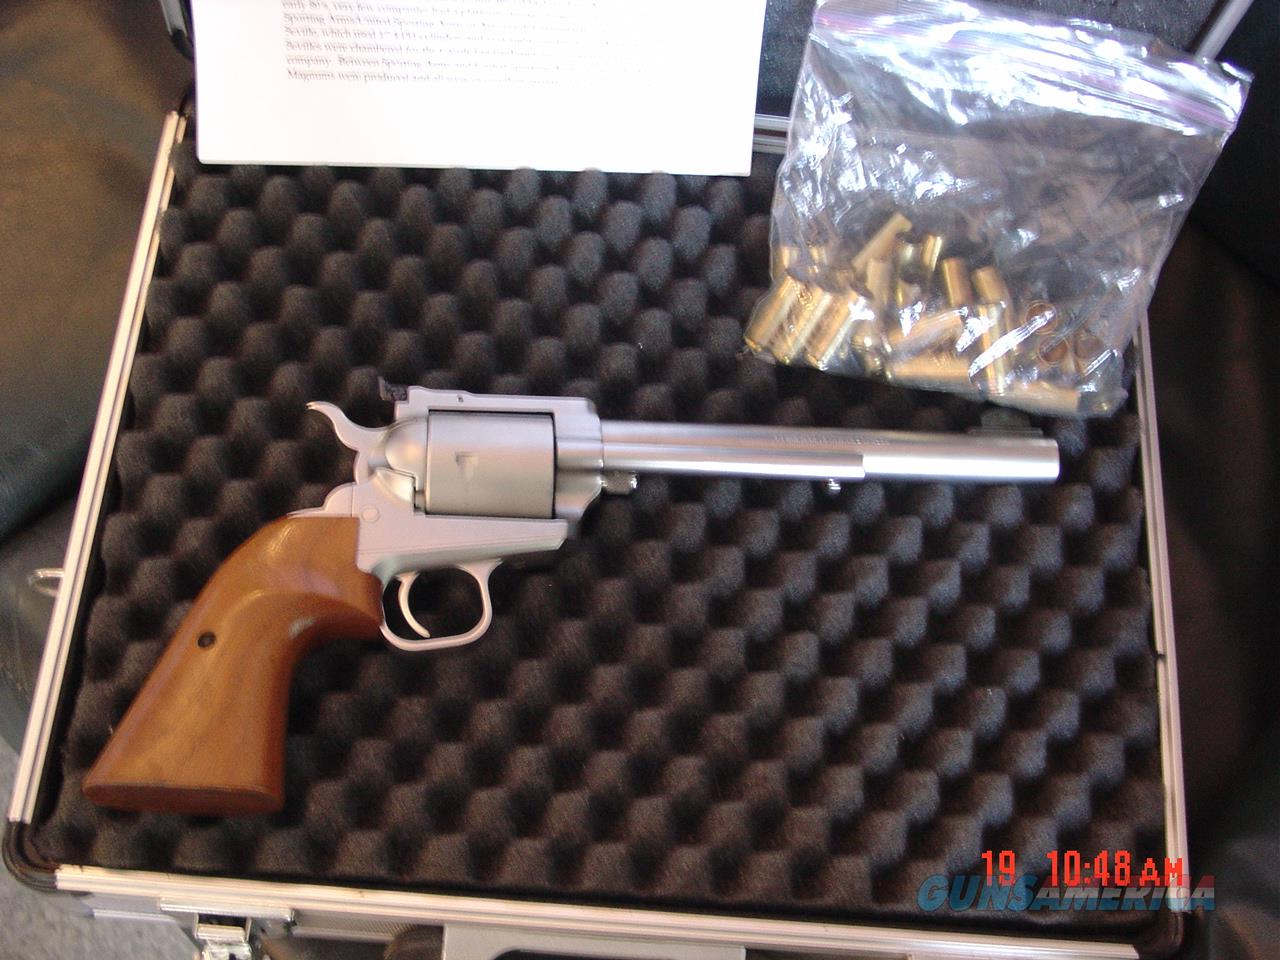 "North American Arms .450 Magnum Express,single action,very rare  hand cannon,7 1/2""barrel,satin stainless,wood grips,5 shots,never fired,heavy aluminum carry case,  Guns > Pistols > North American Arms Pistols"